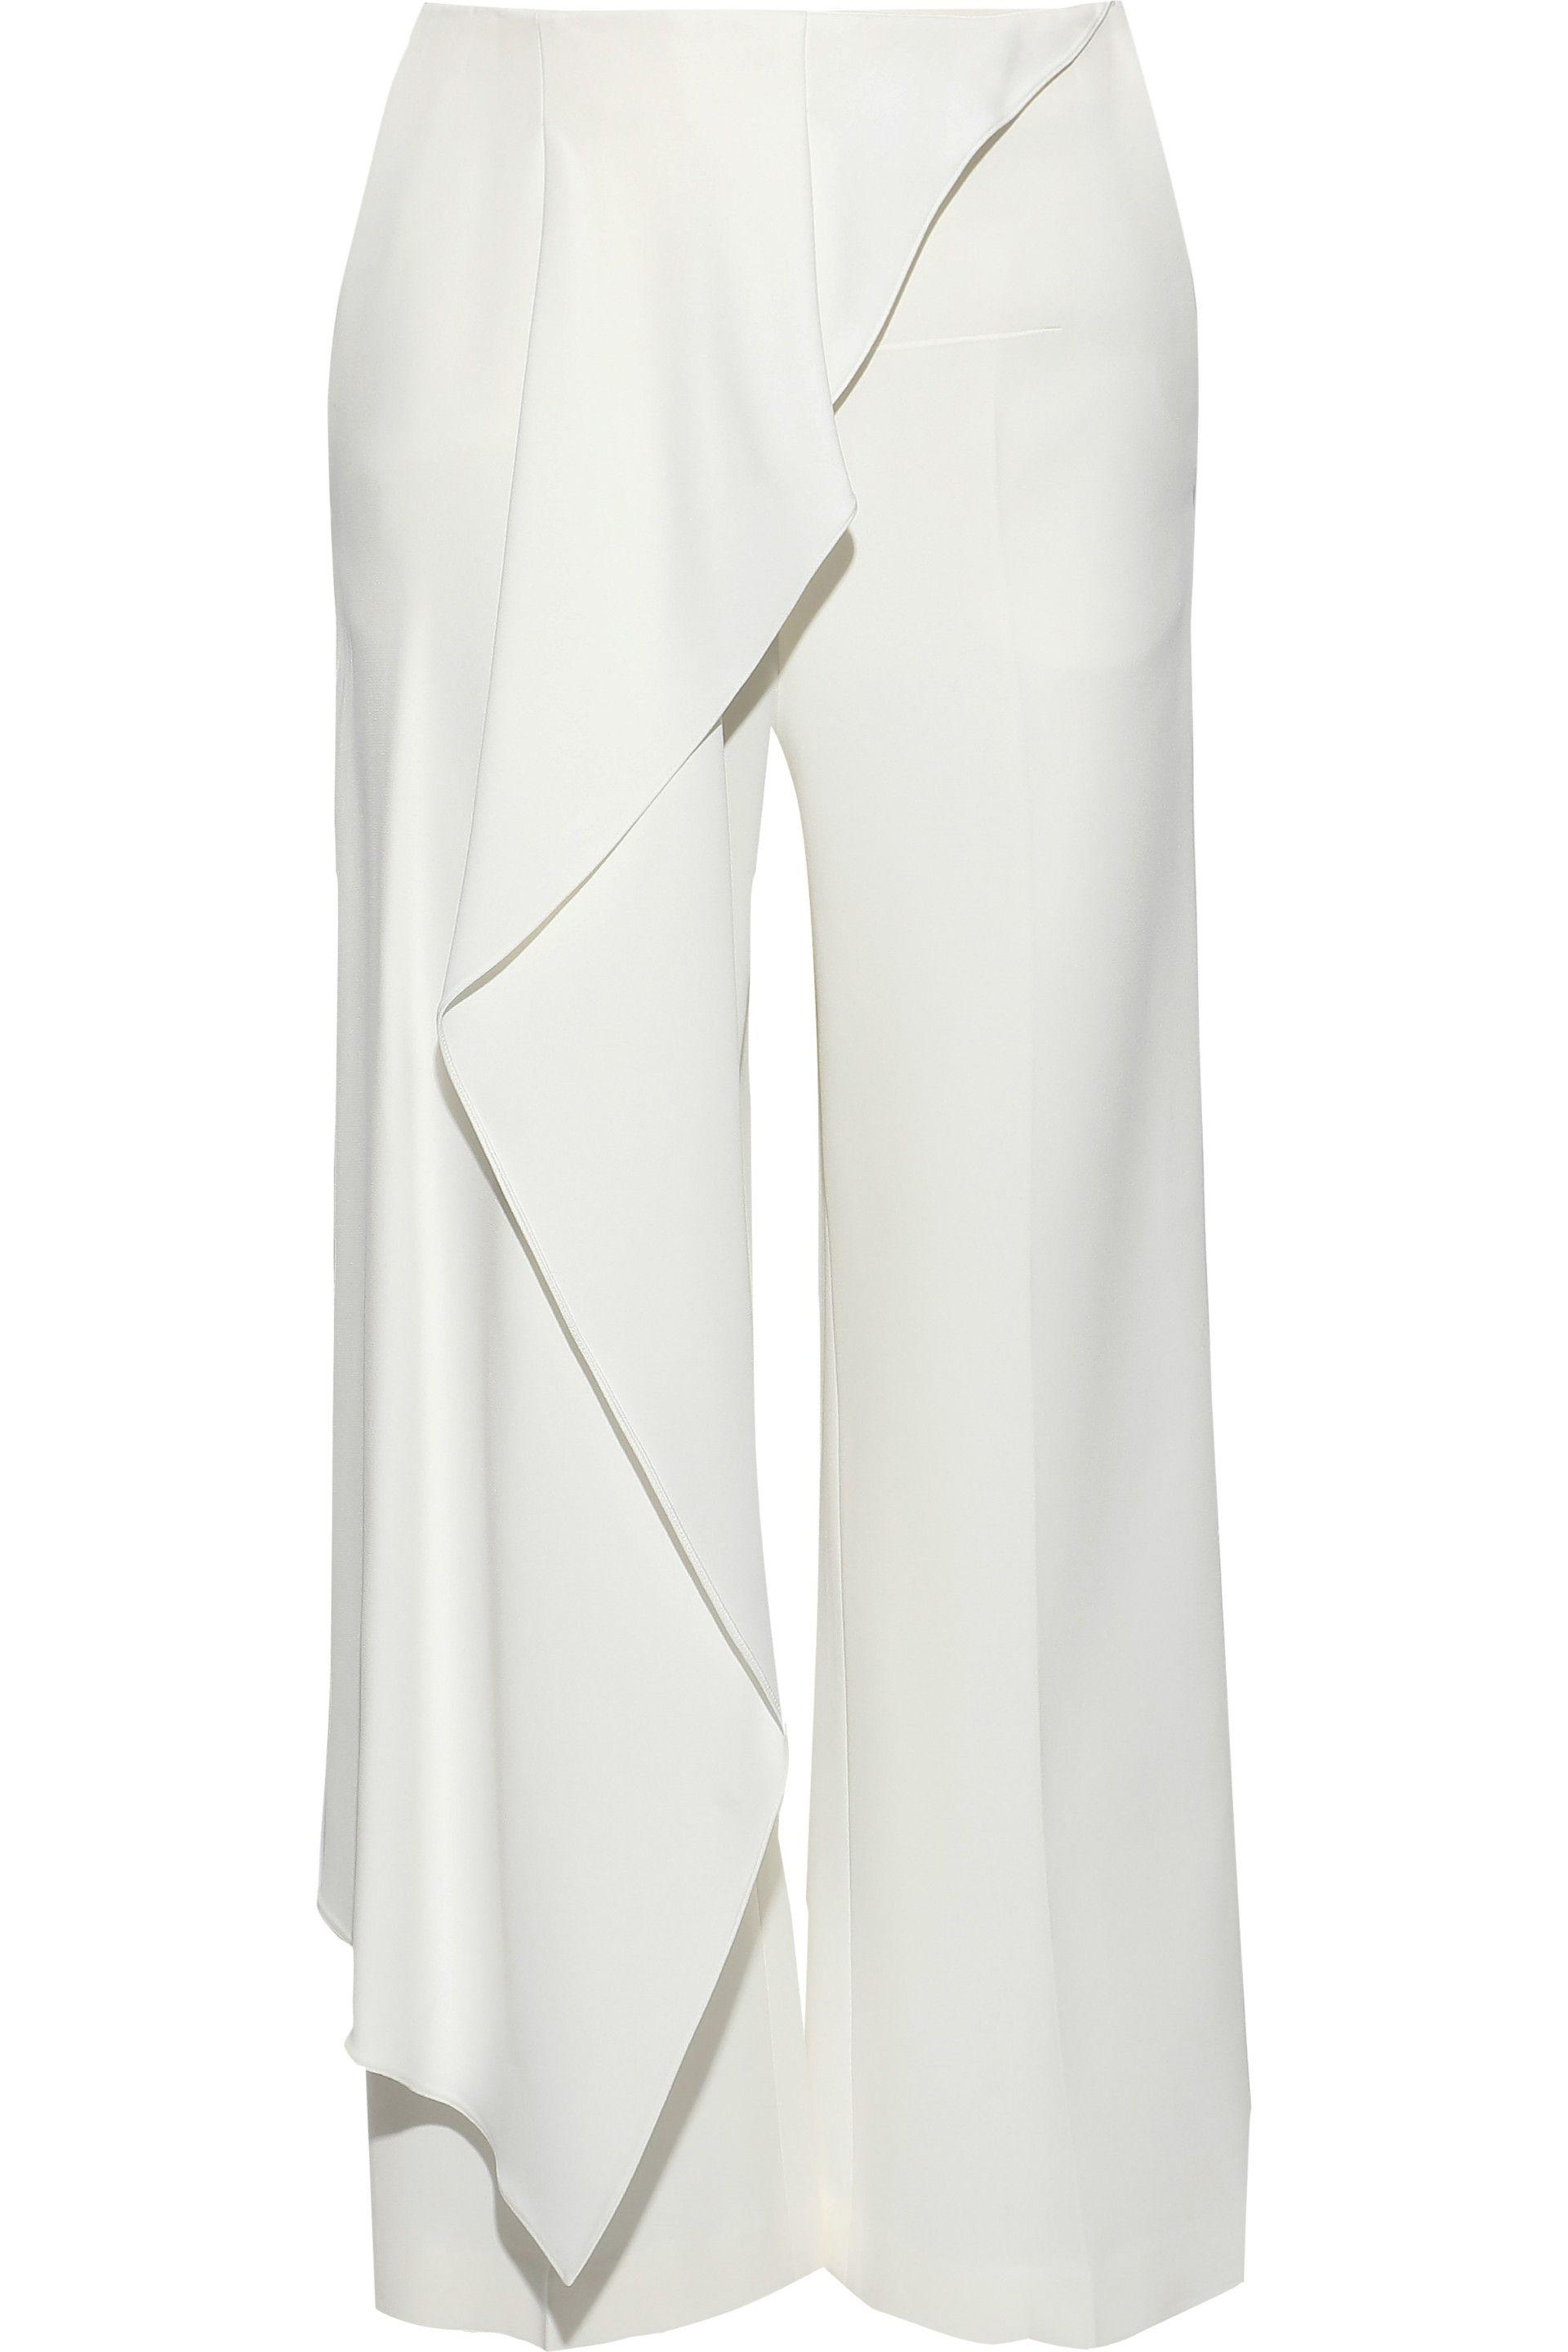 Woman Lyst Draped Roland Mouret Griffith Cropped Stretch Crepe DEH29WIY